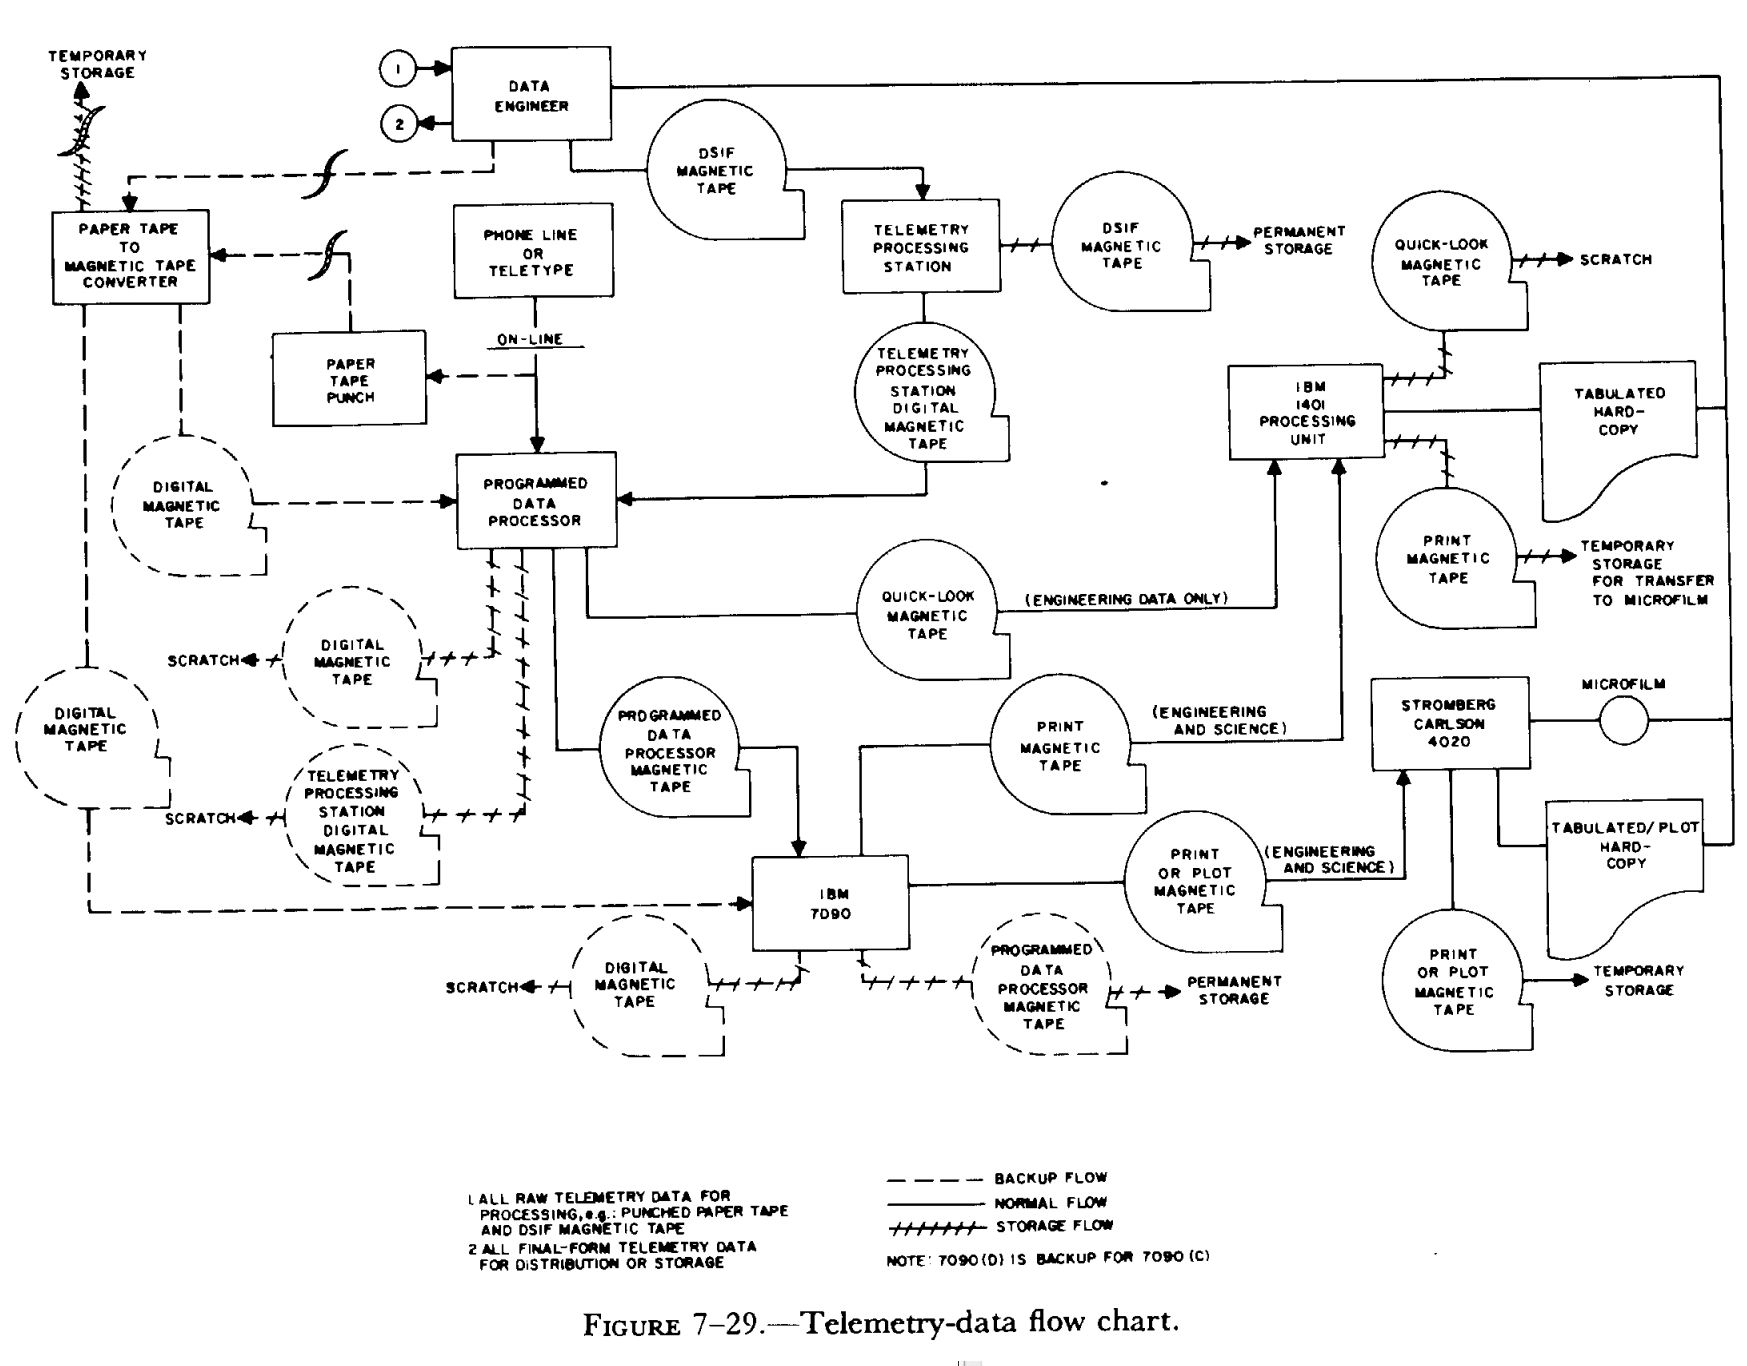 Flow Charts Templates: Telemetry-data flow chart.jpg - Wikimedia Commons,Chart